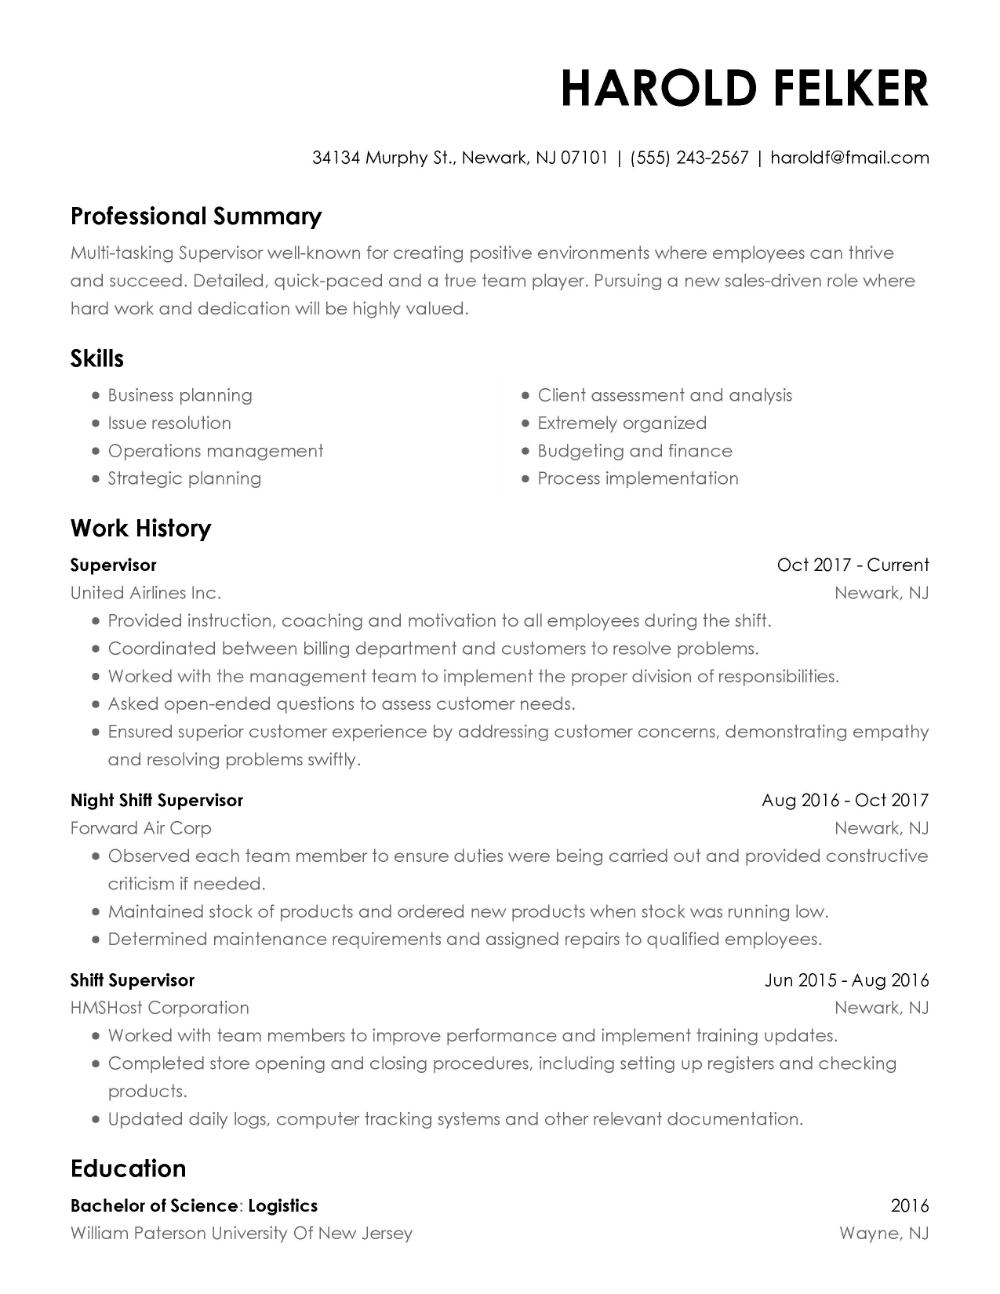 View 30 Samples Of Resumes By Industry Experience Level Resume Objective Statement Examples Resume Examples Resume